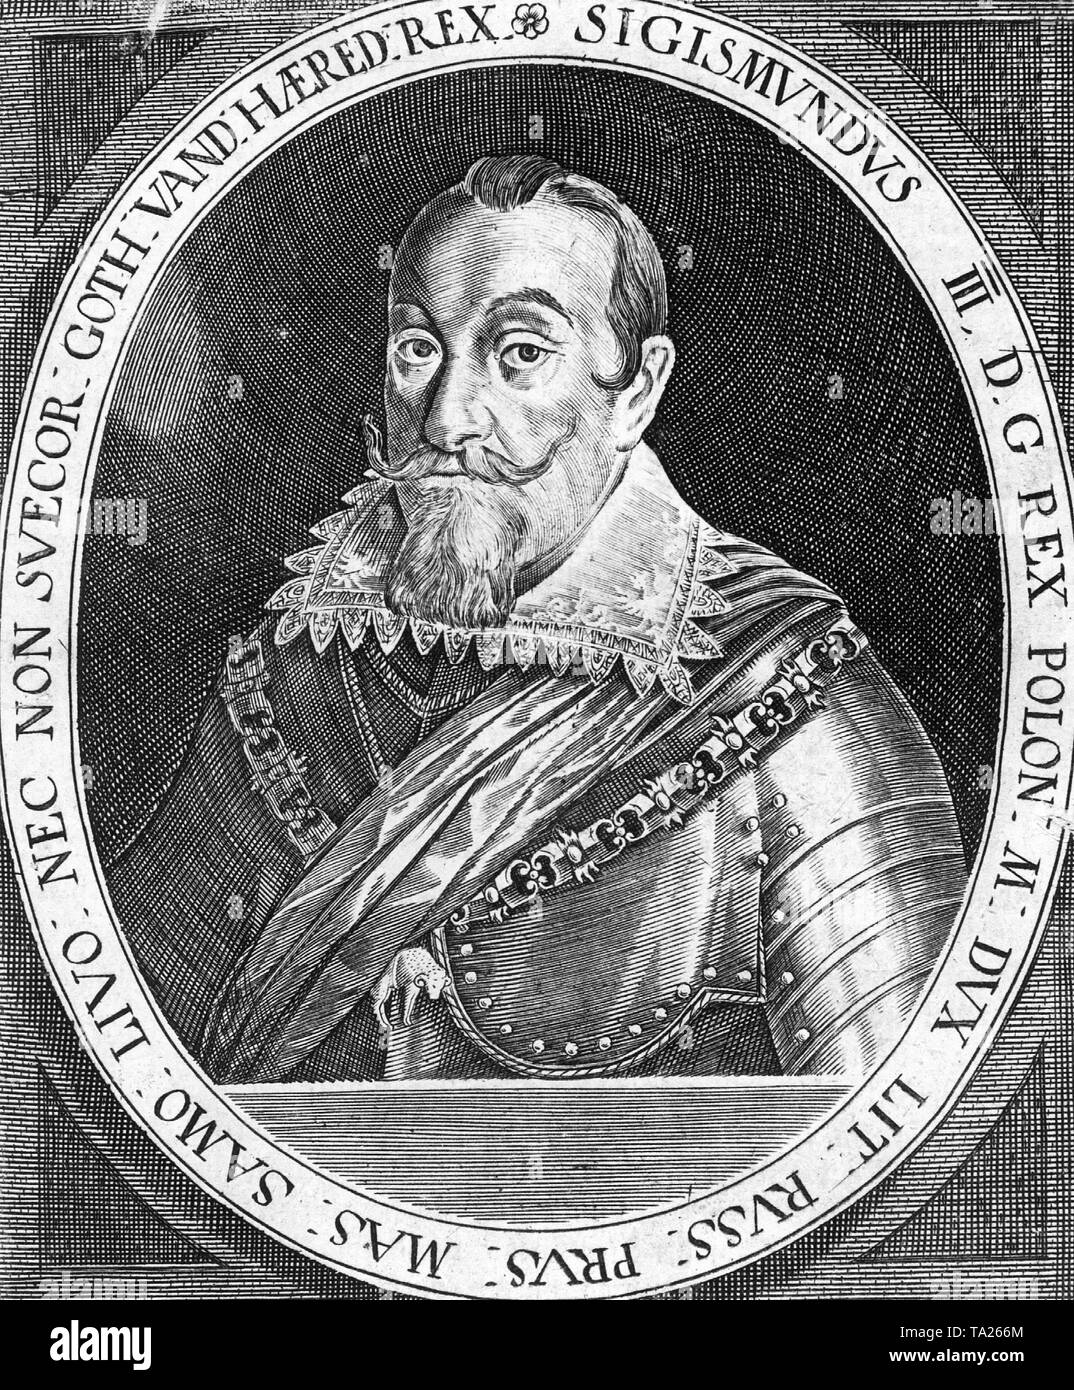 Sigismund III Vasa (1566-1632), King of Poland (1587-1632) and Sweden (1592-1604). In 1604 he lost the throne of Sweden in favor of his uncle, Charles IX. In 1629 he had to cede large parts of northern Poland to Gustav II Adolf, the son of Charles IX. His attempts to conquer parts of Russia taking advantage of the Russian civil unrests failed. He supported the Counter-Reformation. - Stock Image